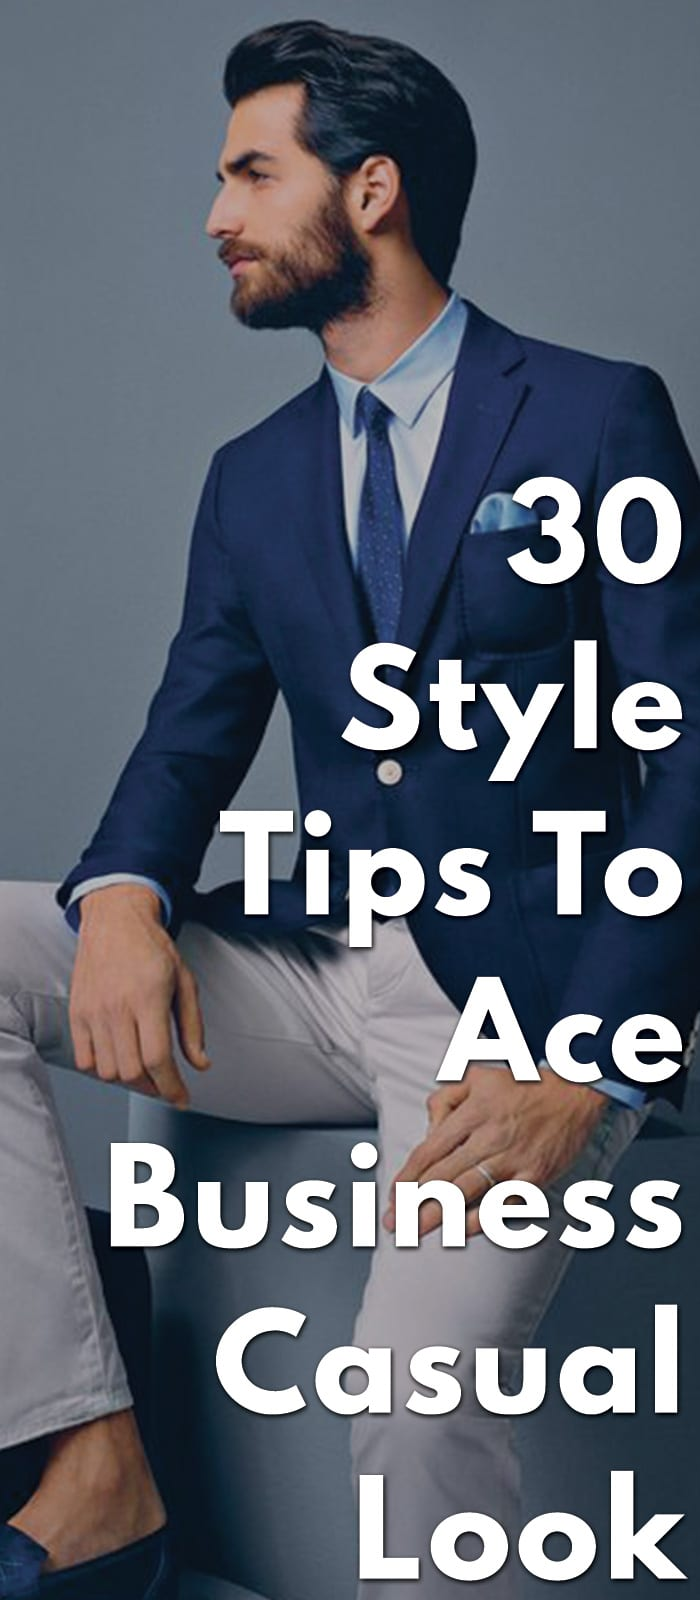 30-Style-Tips-To-Ace-Business-Casual-Look-...